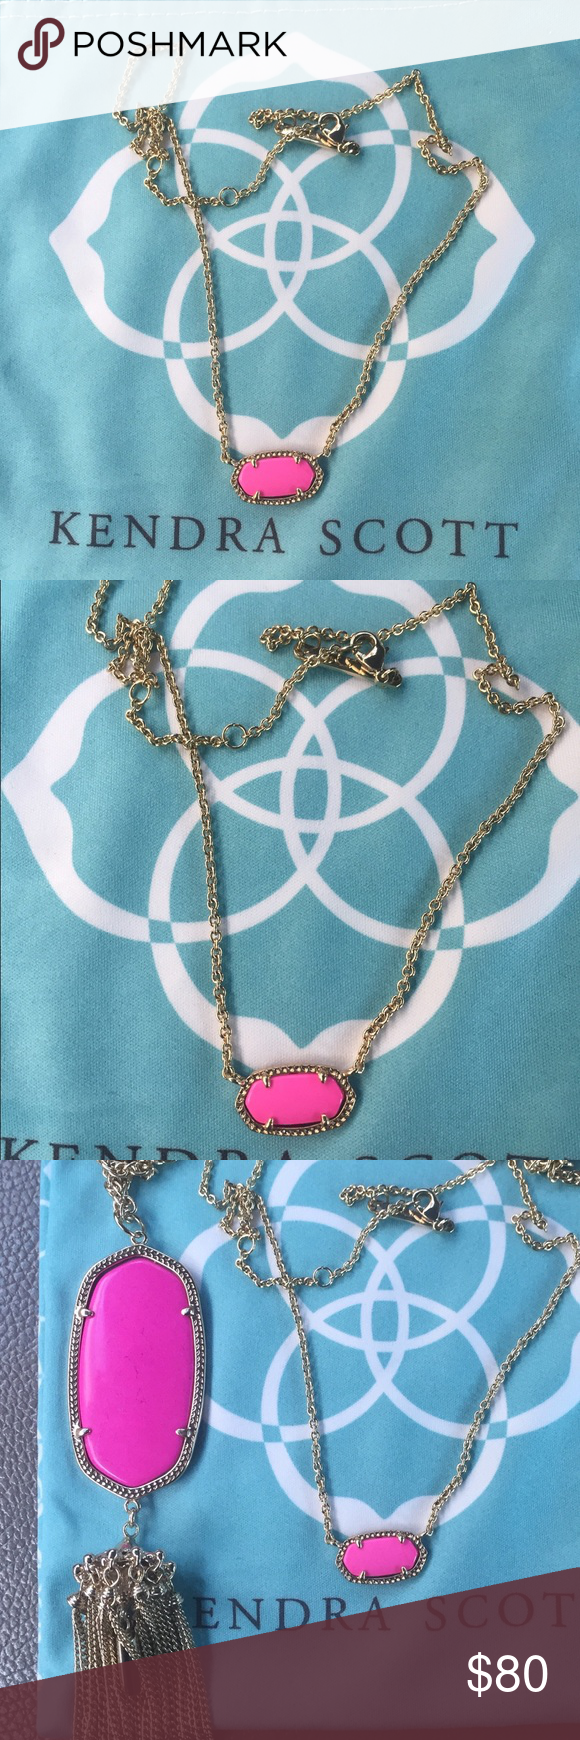 Kendra Scott Neon Pink Elisa Necklace Gold EUC Like new condition. This is the neon pink color, hard to find. I have put it next to the magenta Rayne Necklace to compare. The magenta had a purple hint to it and this necklace doesn't. No flaws at all. It will NOT comes with a pouch but I will carefully wrap it. NO TRADES. Cheaper thru PayPal or mercari Kendra Scott Jewelry Necklaces